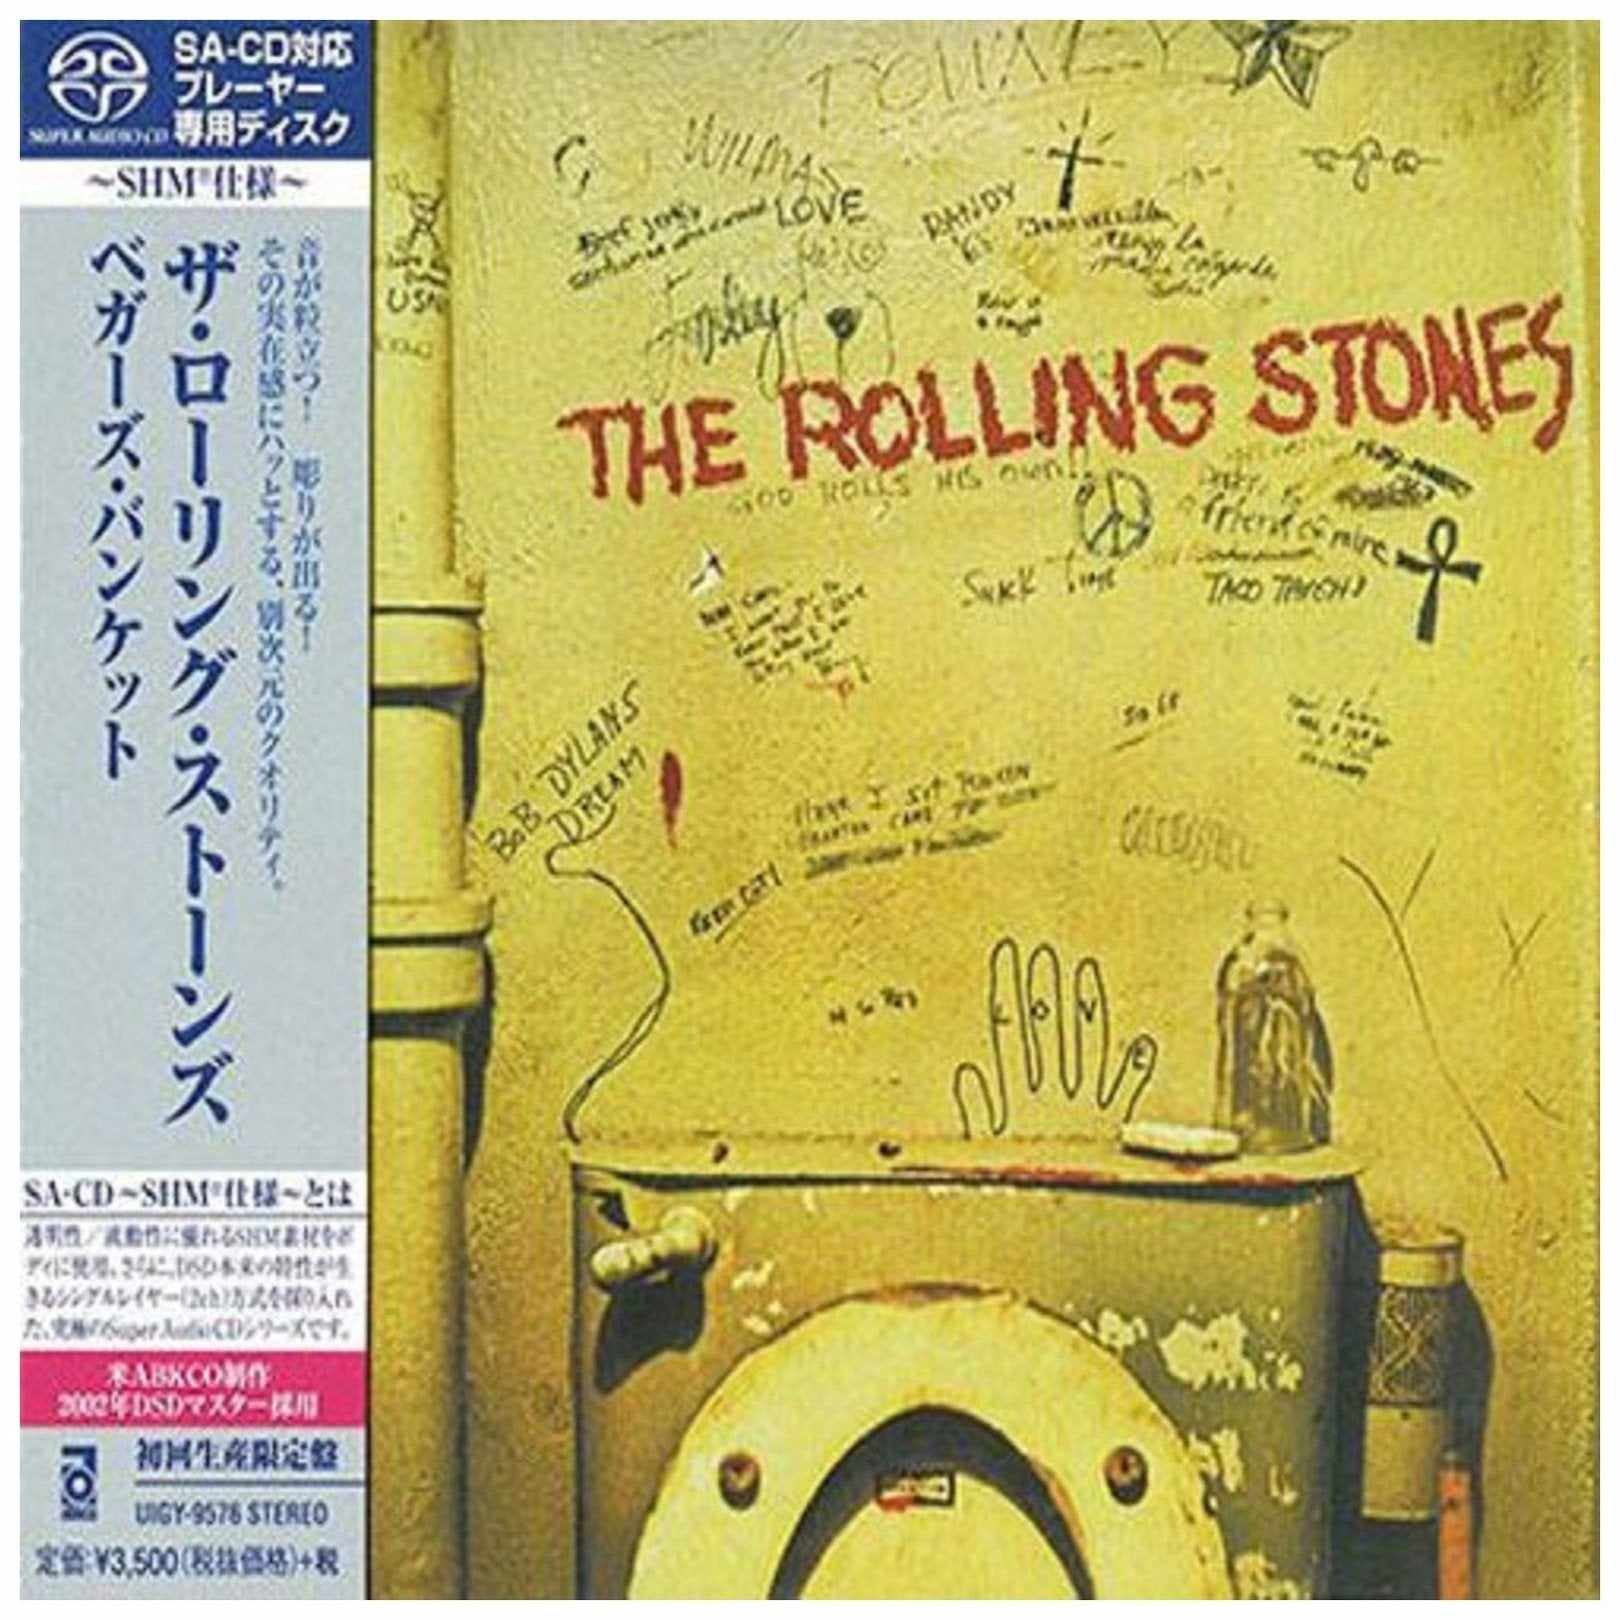 Rolling Stones Rolling Stones Records Lps Vinyl And Cds